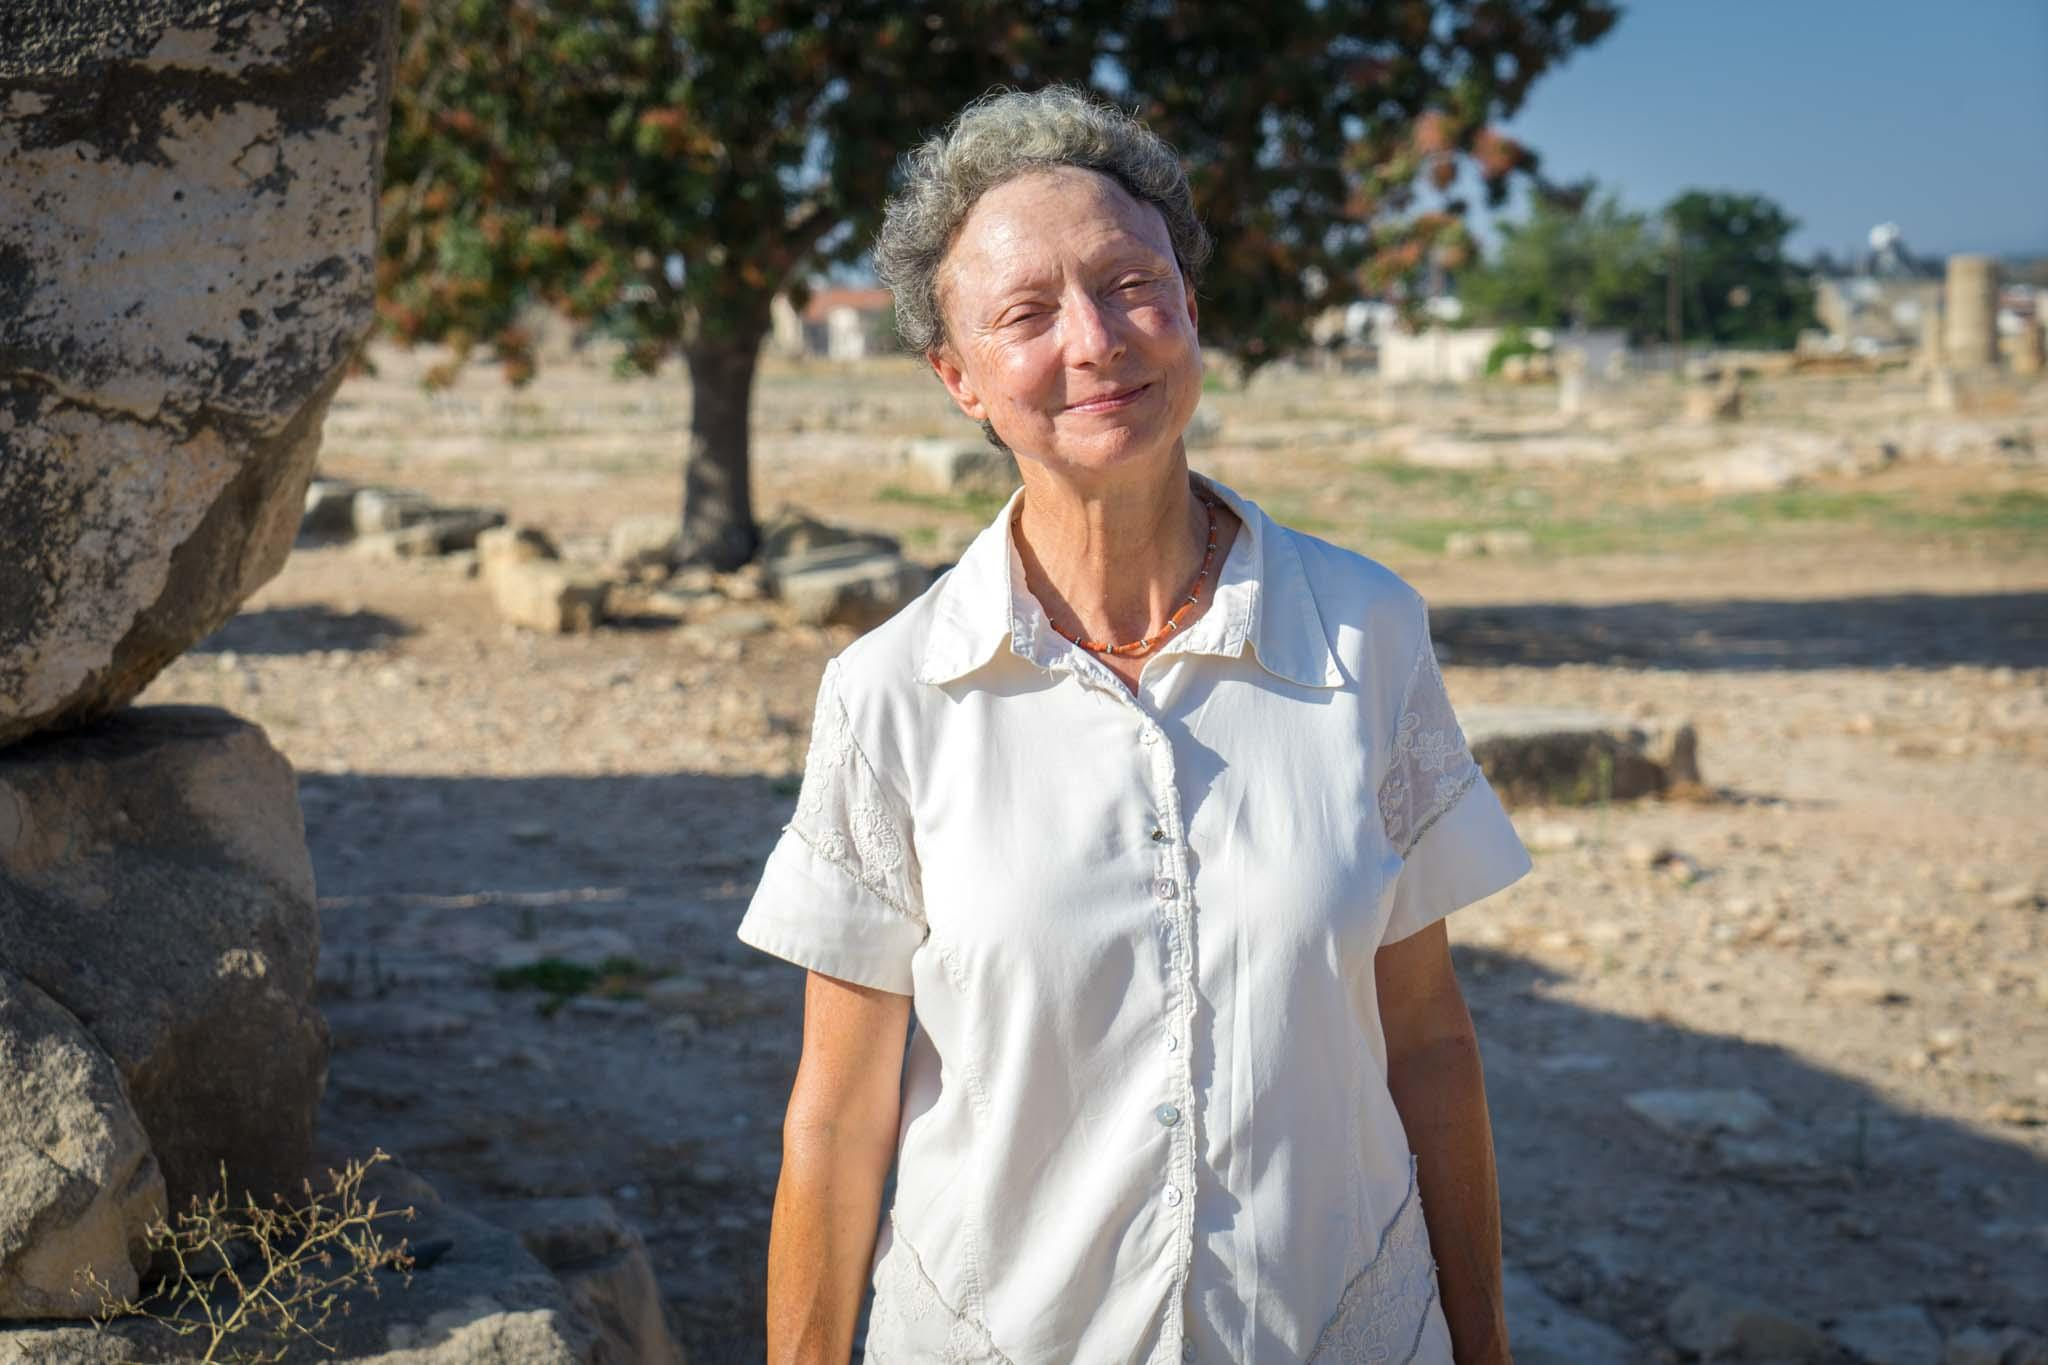 Professor Maria Iacovou, from the University of Cyprus, at the Sanctuary of Aphrodite. – © Michael Turtle